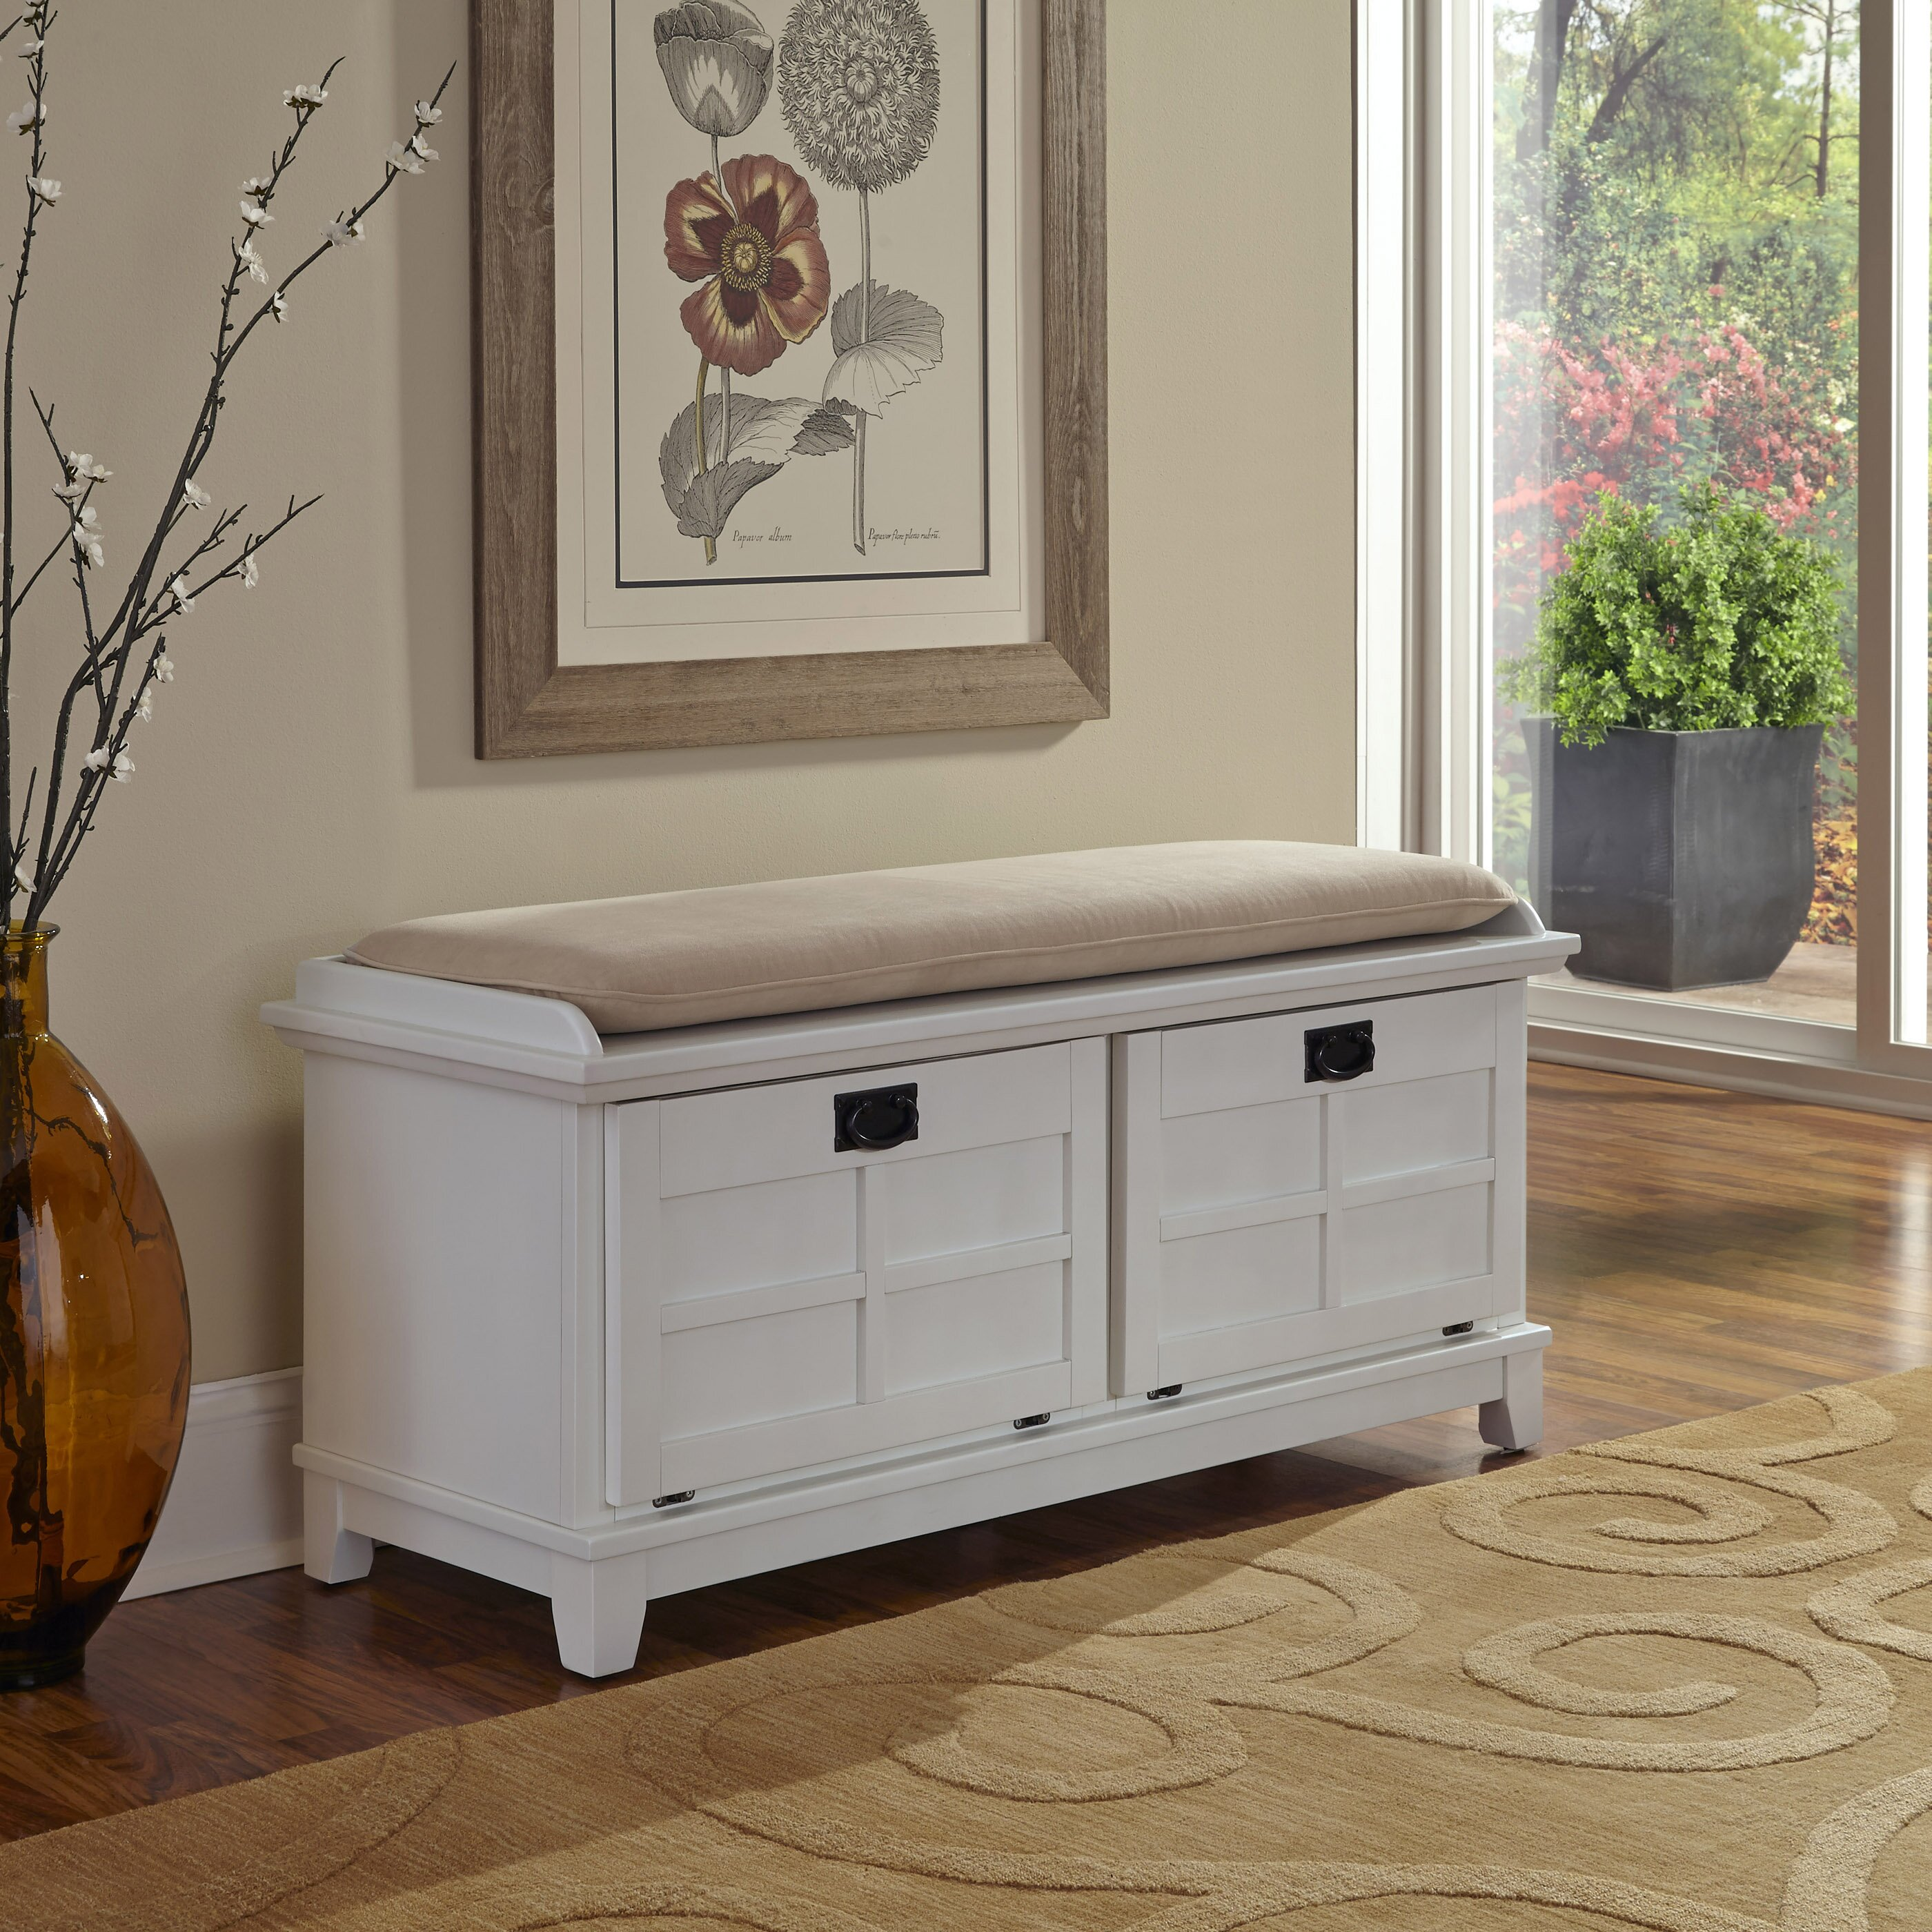 Foyer Mudroom Review : Alcott hill lakeview wood storage entryway bench reviews